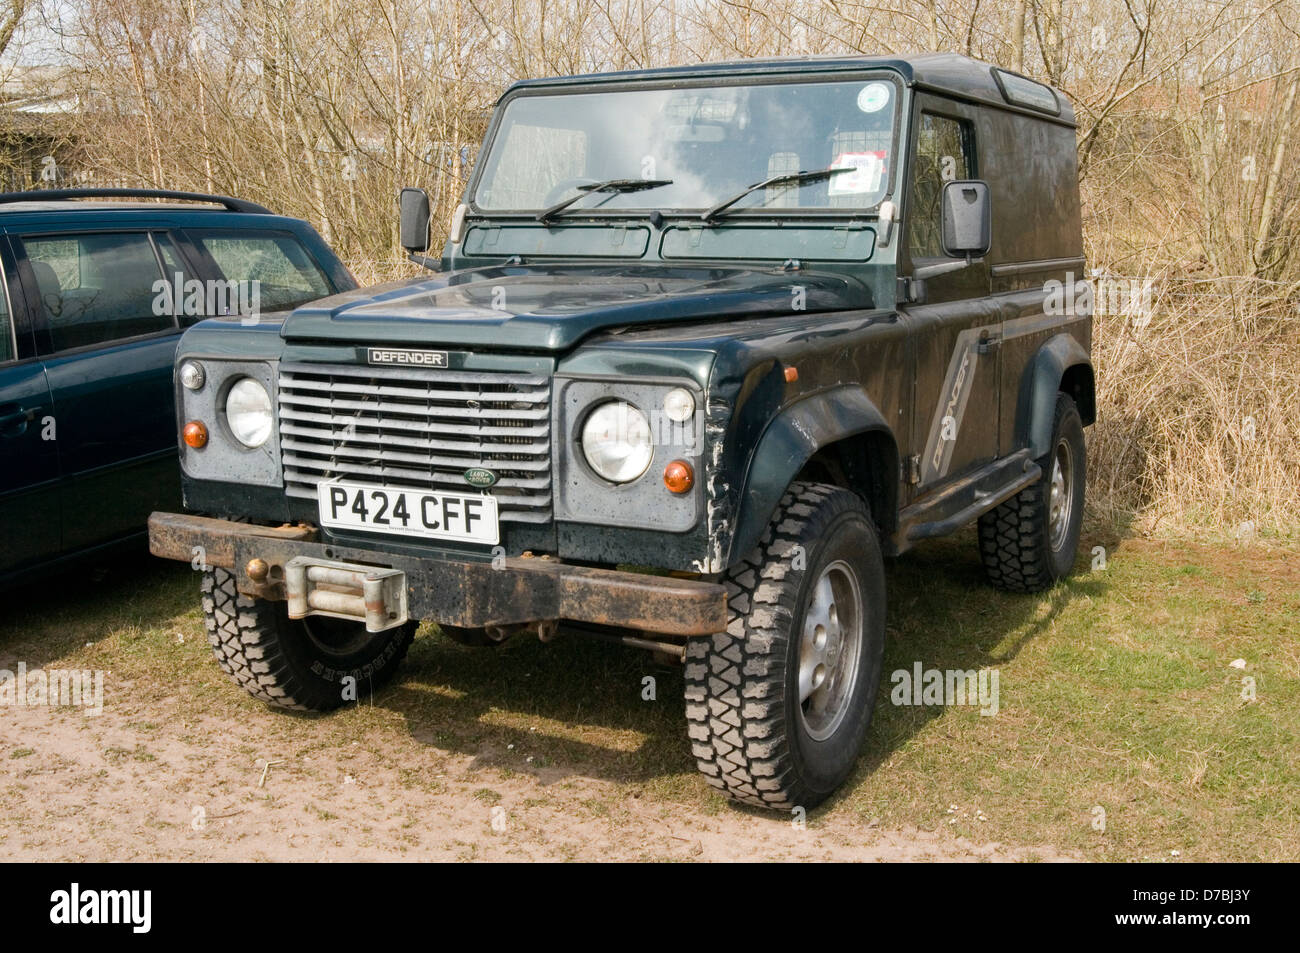 Land Rover Defender Stock Photos & Land Rover Defender ...